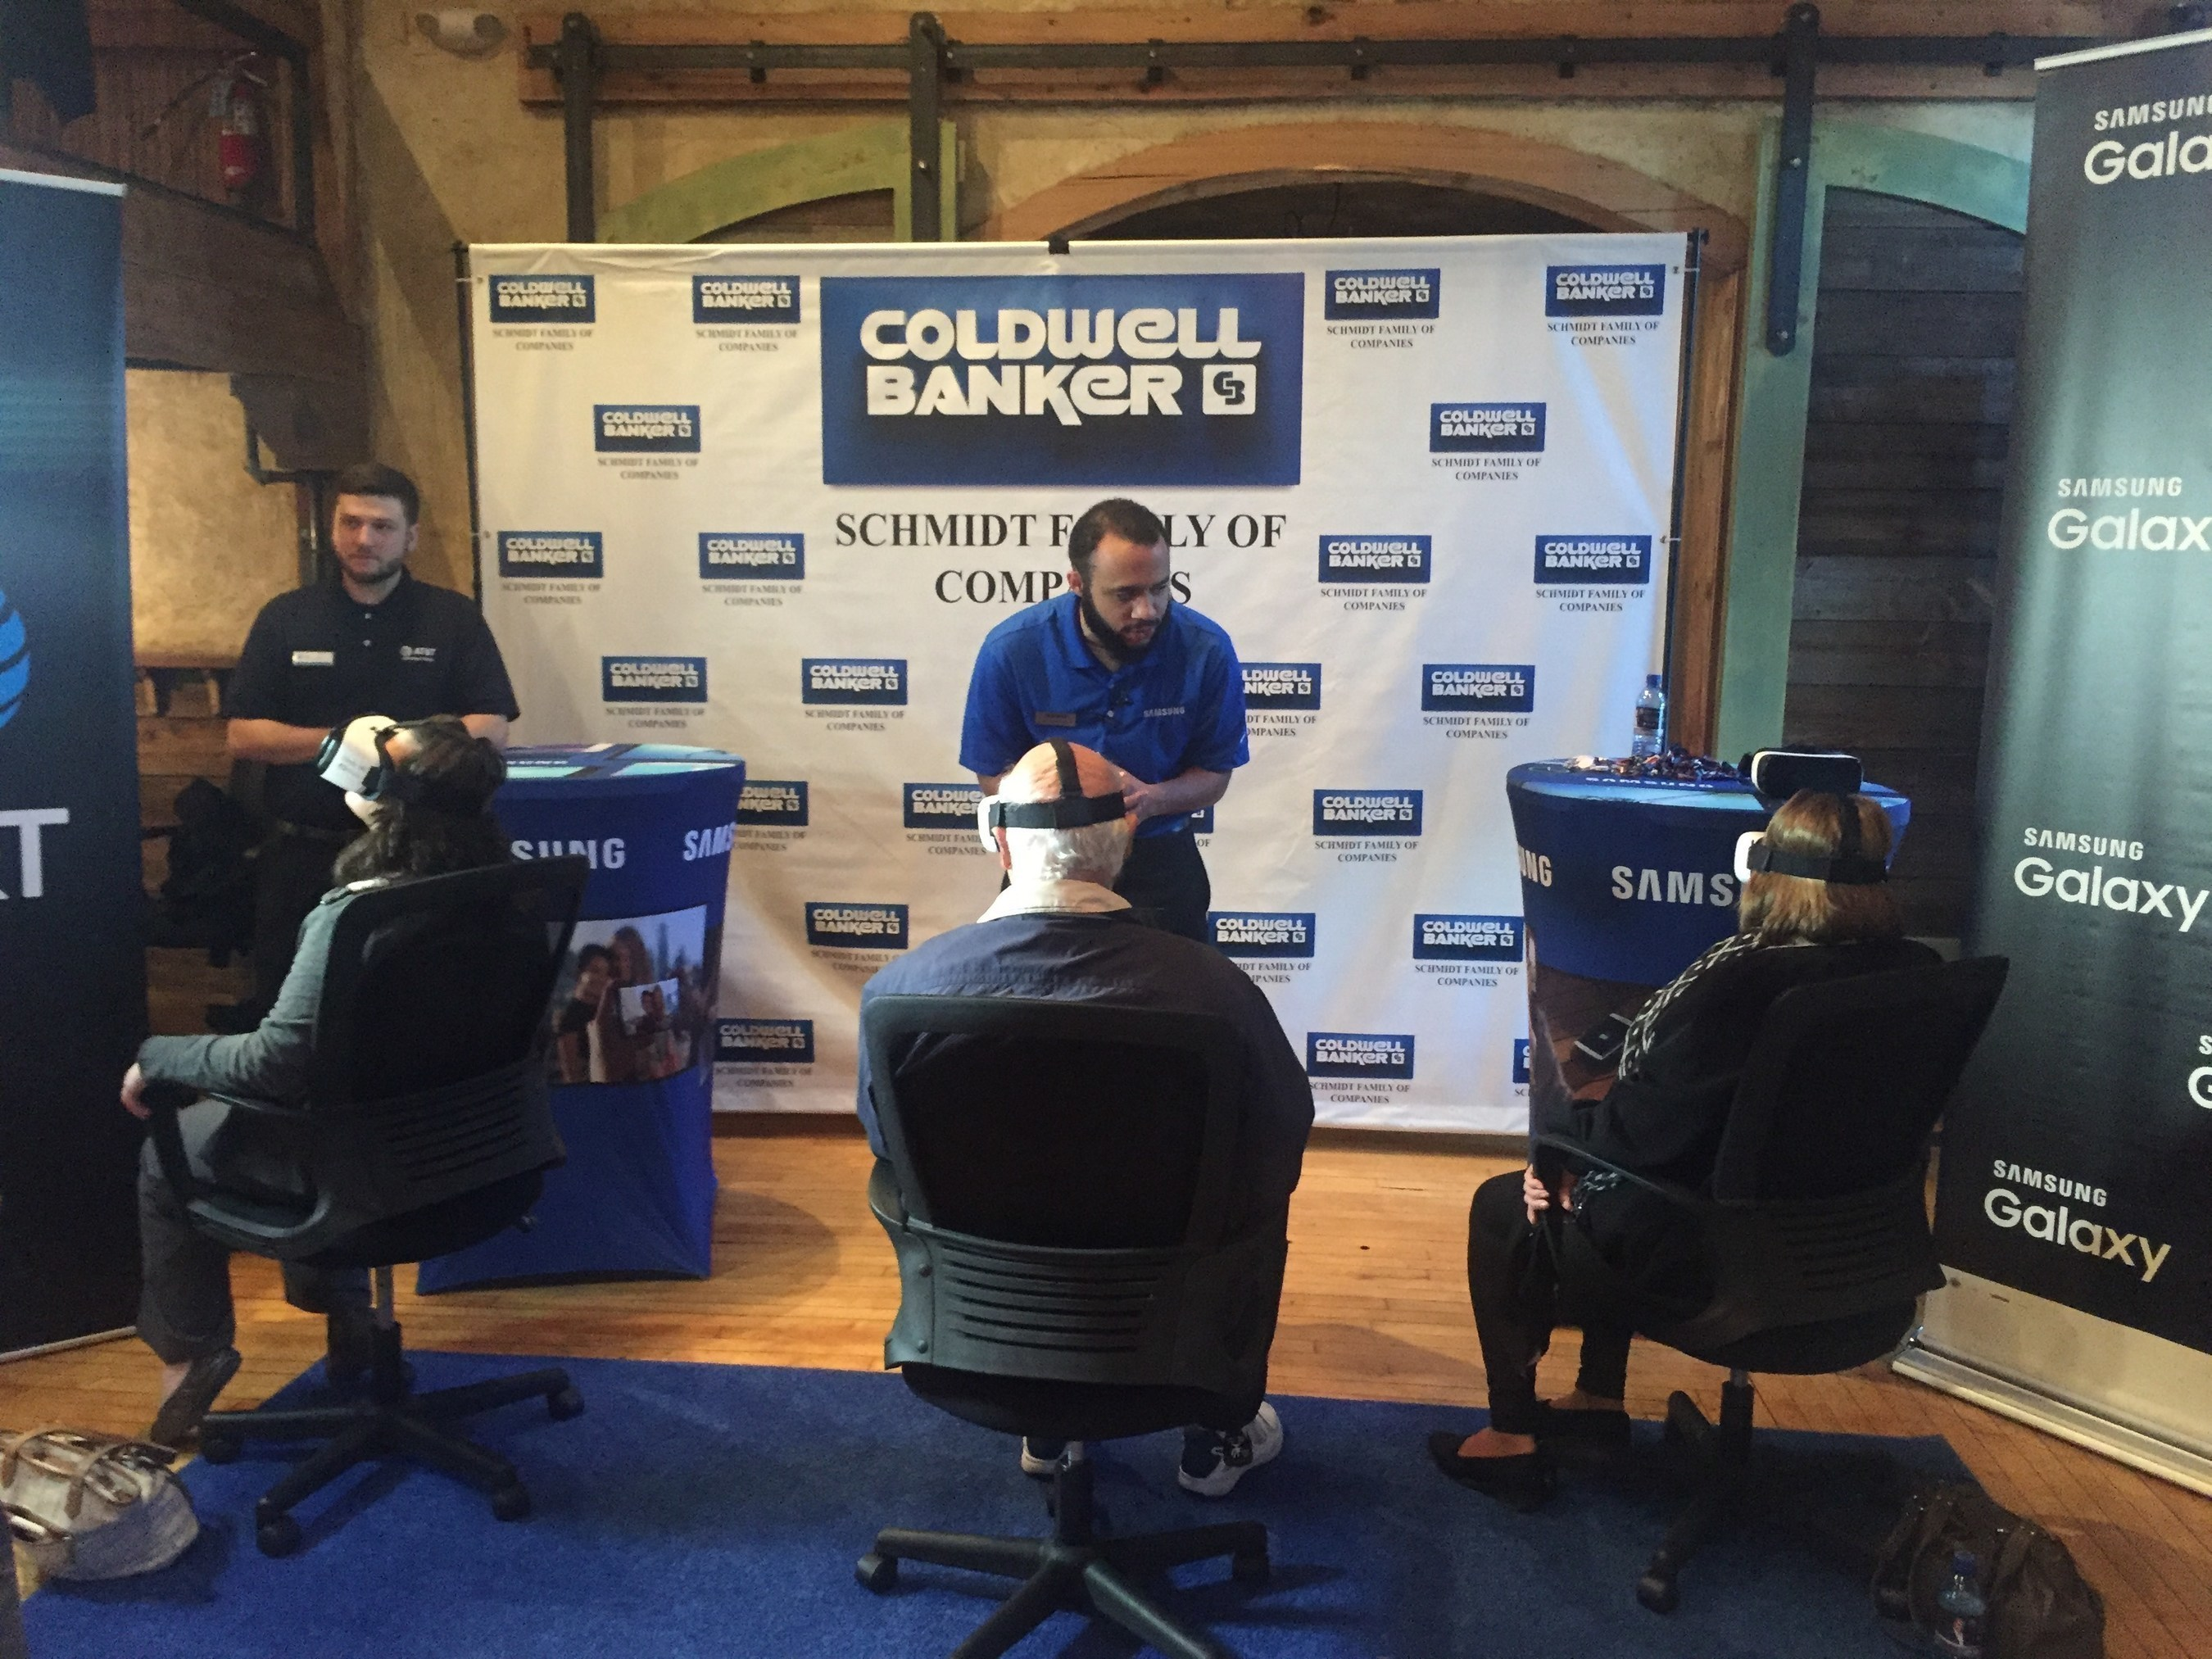 Coldwell Banker Real Estate Agents Used Virtual Reality to Change How Brokers Tour Homes